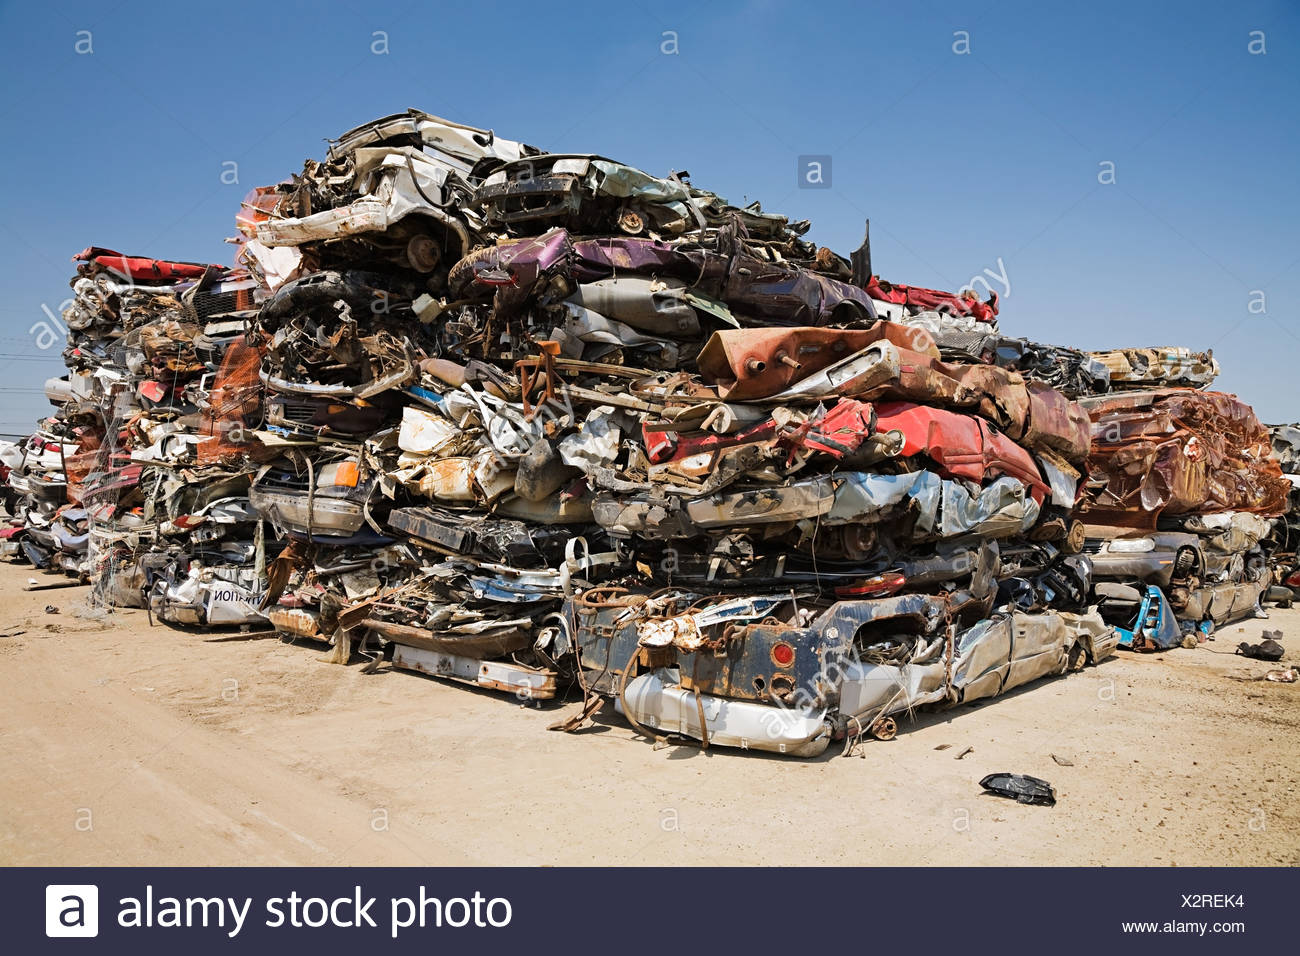 Crushed cars - Stock Image